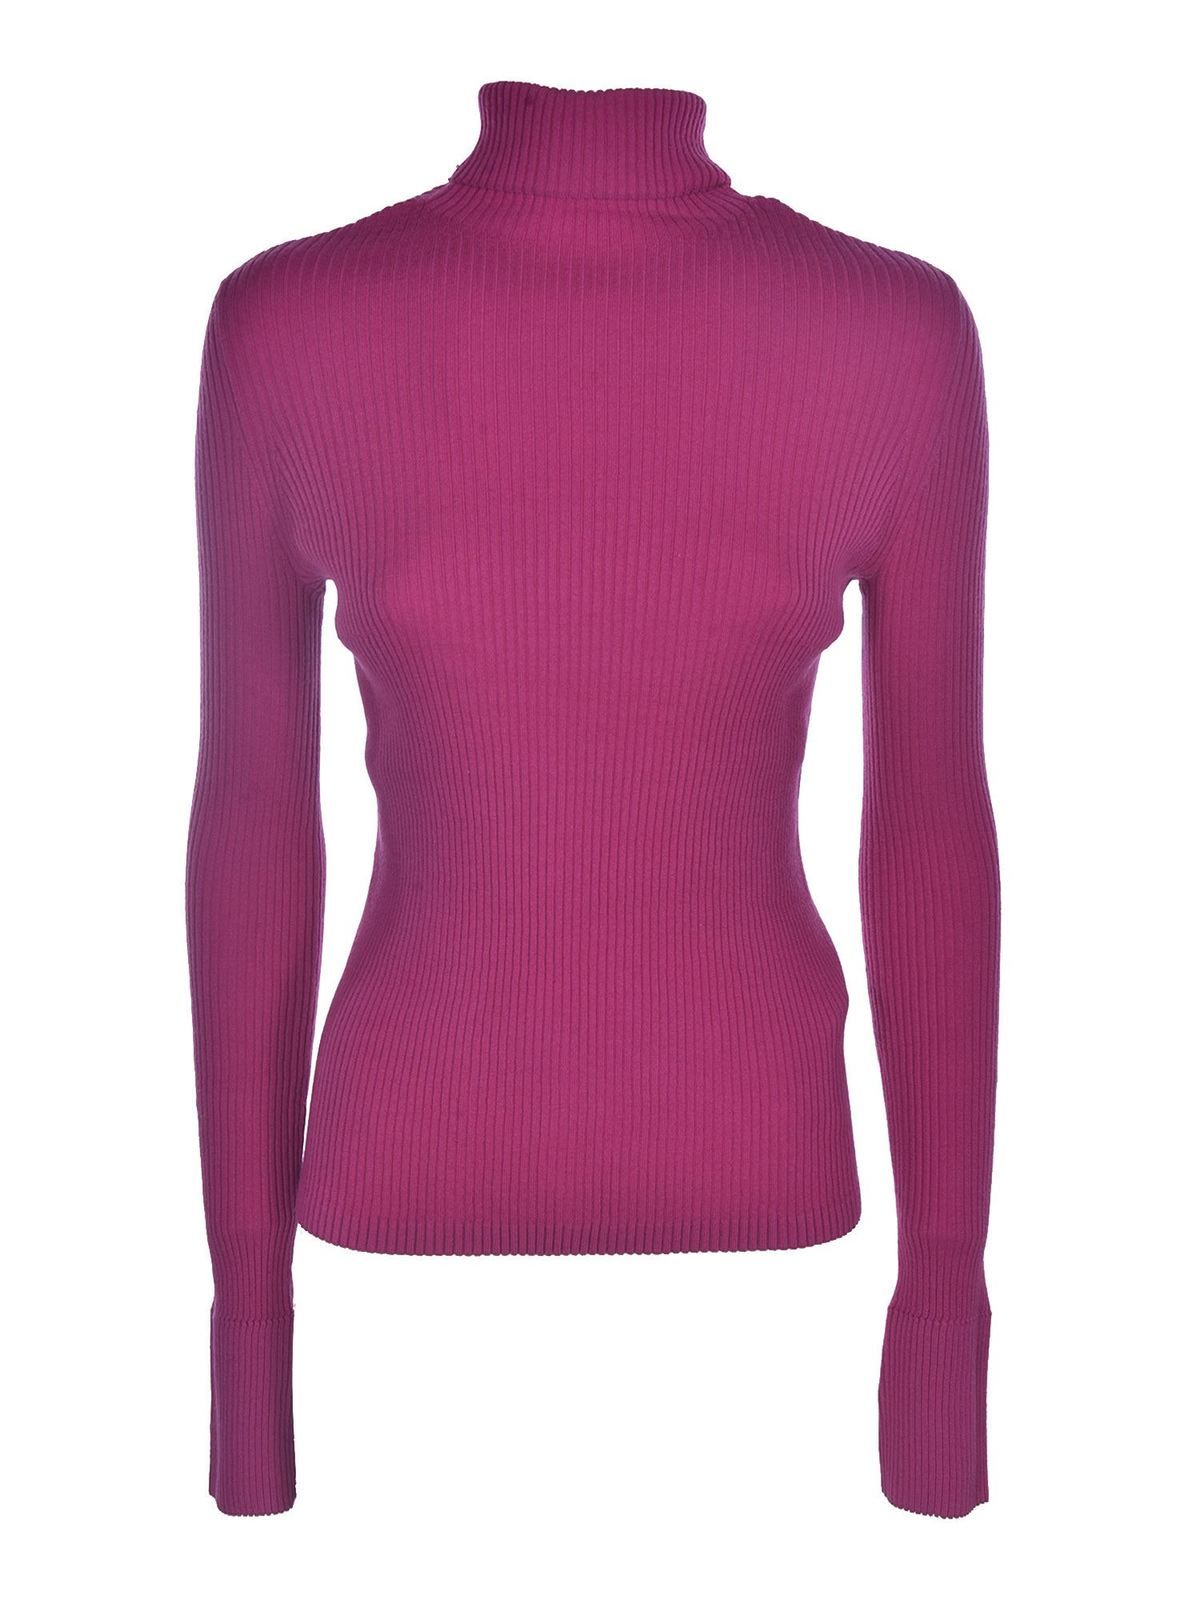 Diesel RIBBED KNIT PULLOVER IN PURPLE